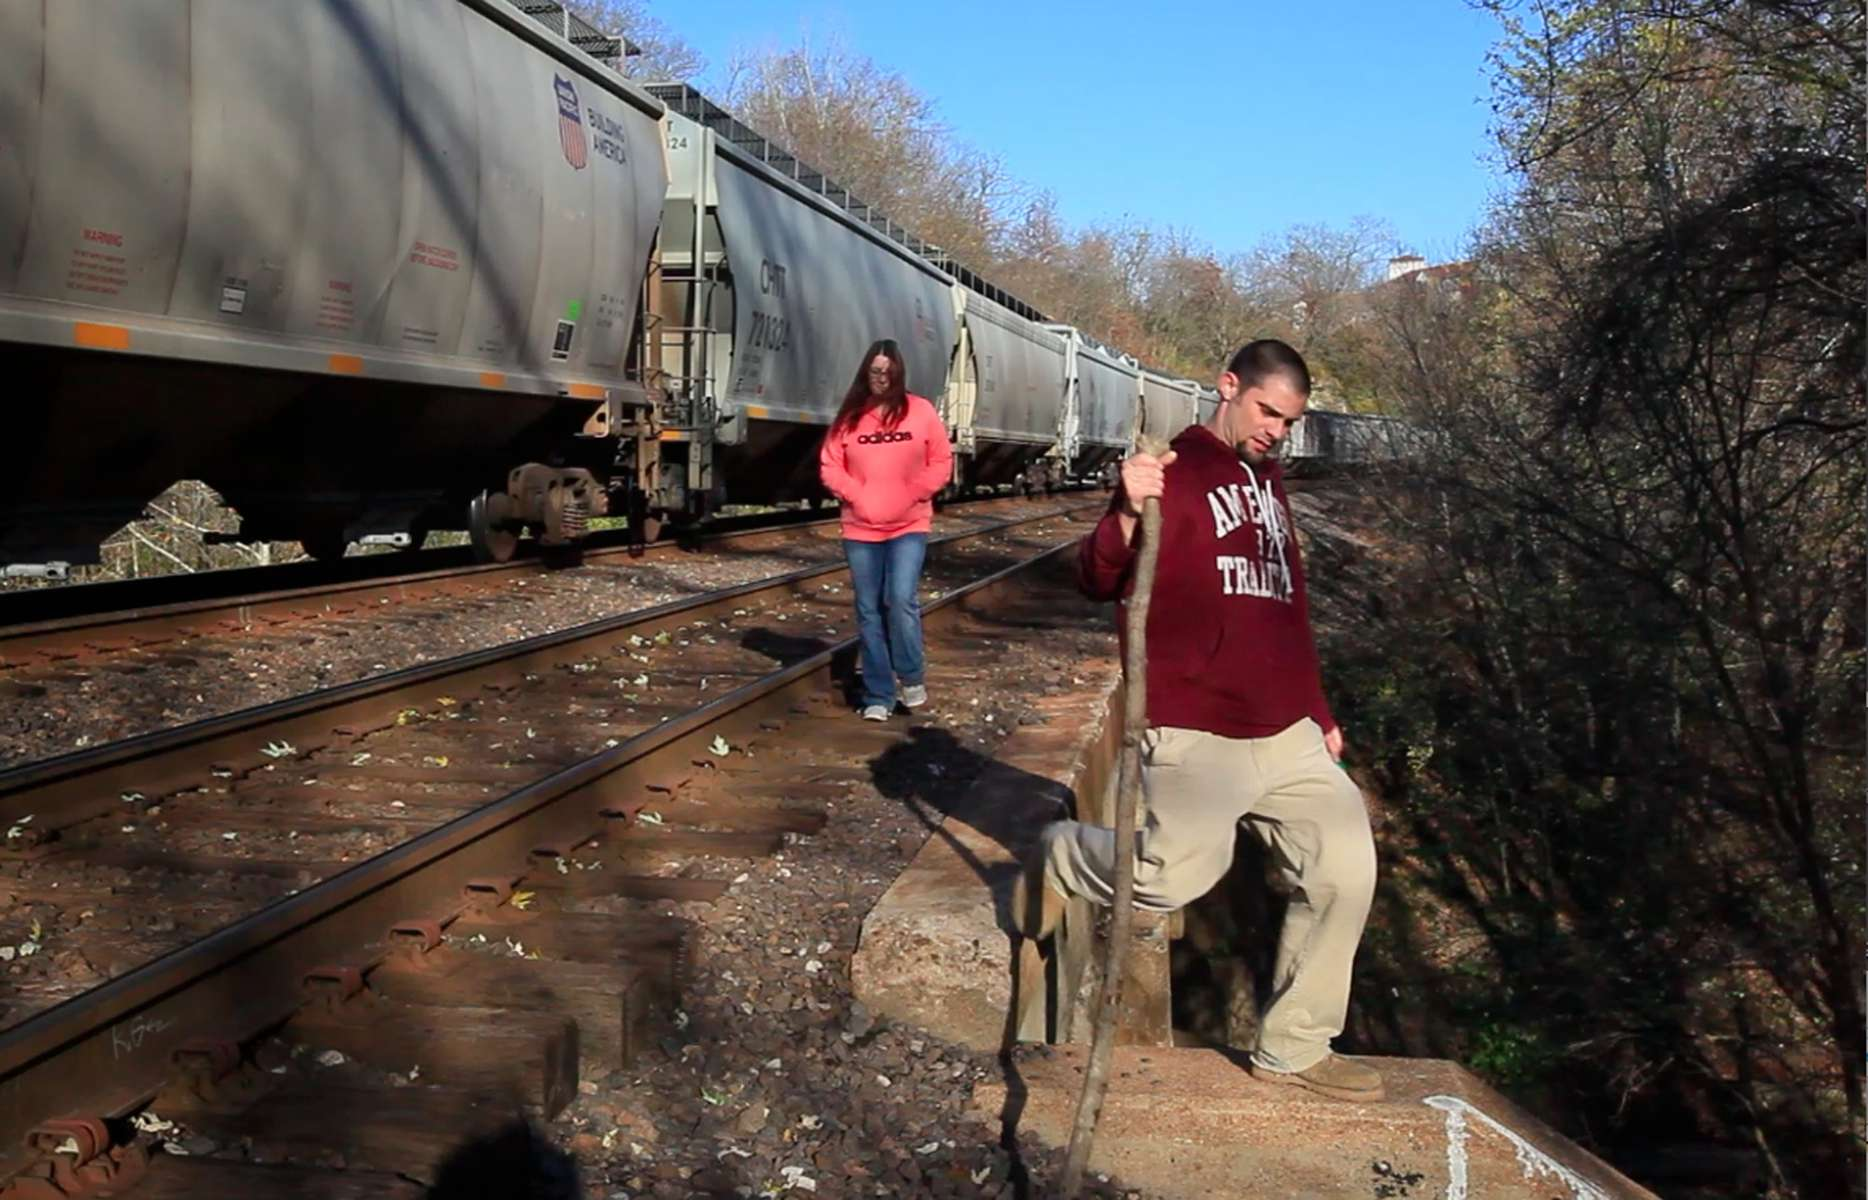 A pair of pedestrians walk across a train trestle with a stopped train on it in Castlewood State Park in St. Louis County on Thursday, Nov. 8, 2012.  The trestle was the site of accident in 1999 involving a mother, Jessica Blair, who was killed and her four year-old son, Dillion Blair who was injured.   The couple did not want to be identified.Photo By David Carson, dcarson@post-dispatch.com